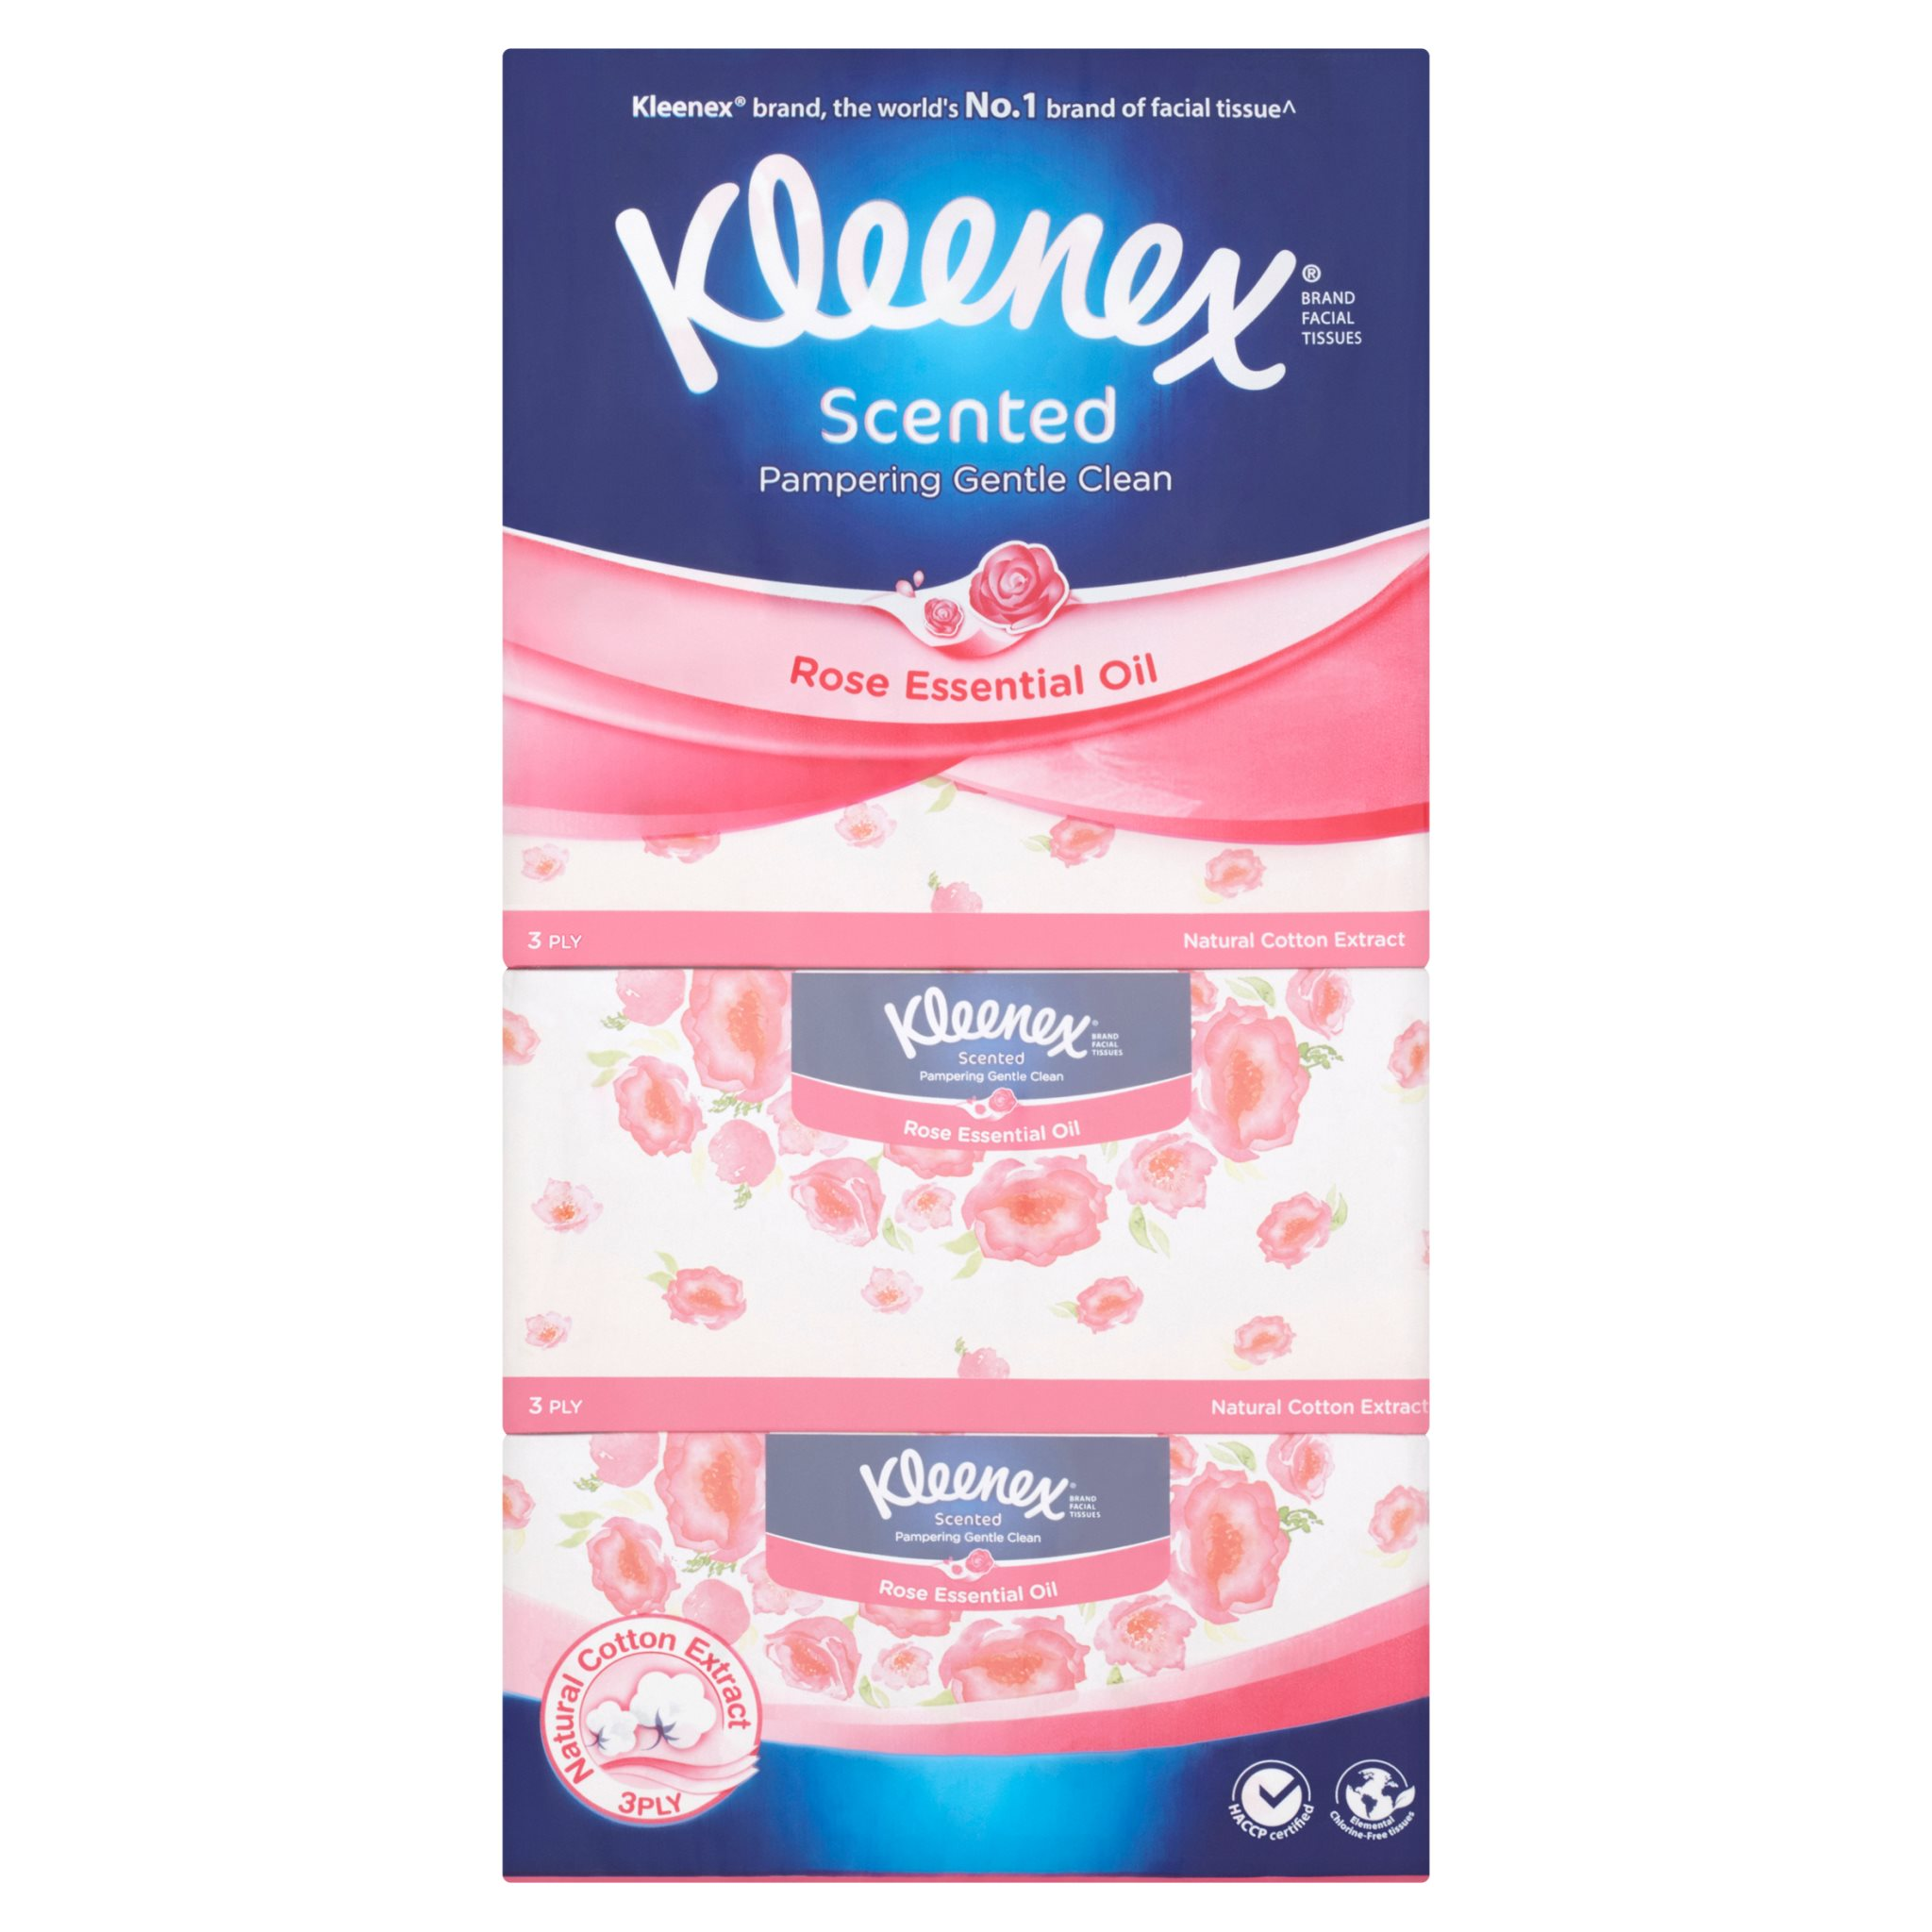 Kleenex Scented Rose Essential Oil Facial Tissues  (3ply x 4pcs)